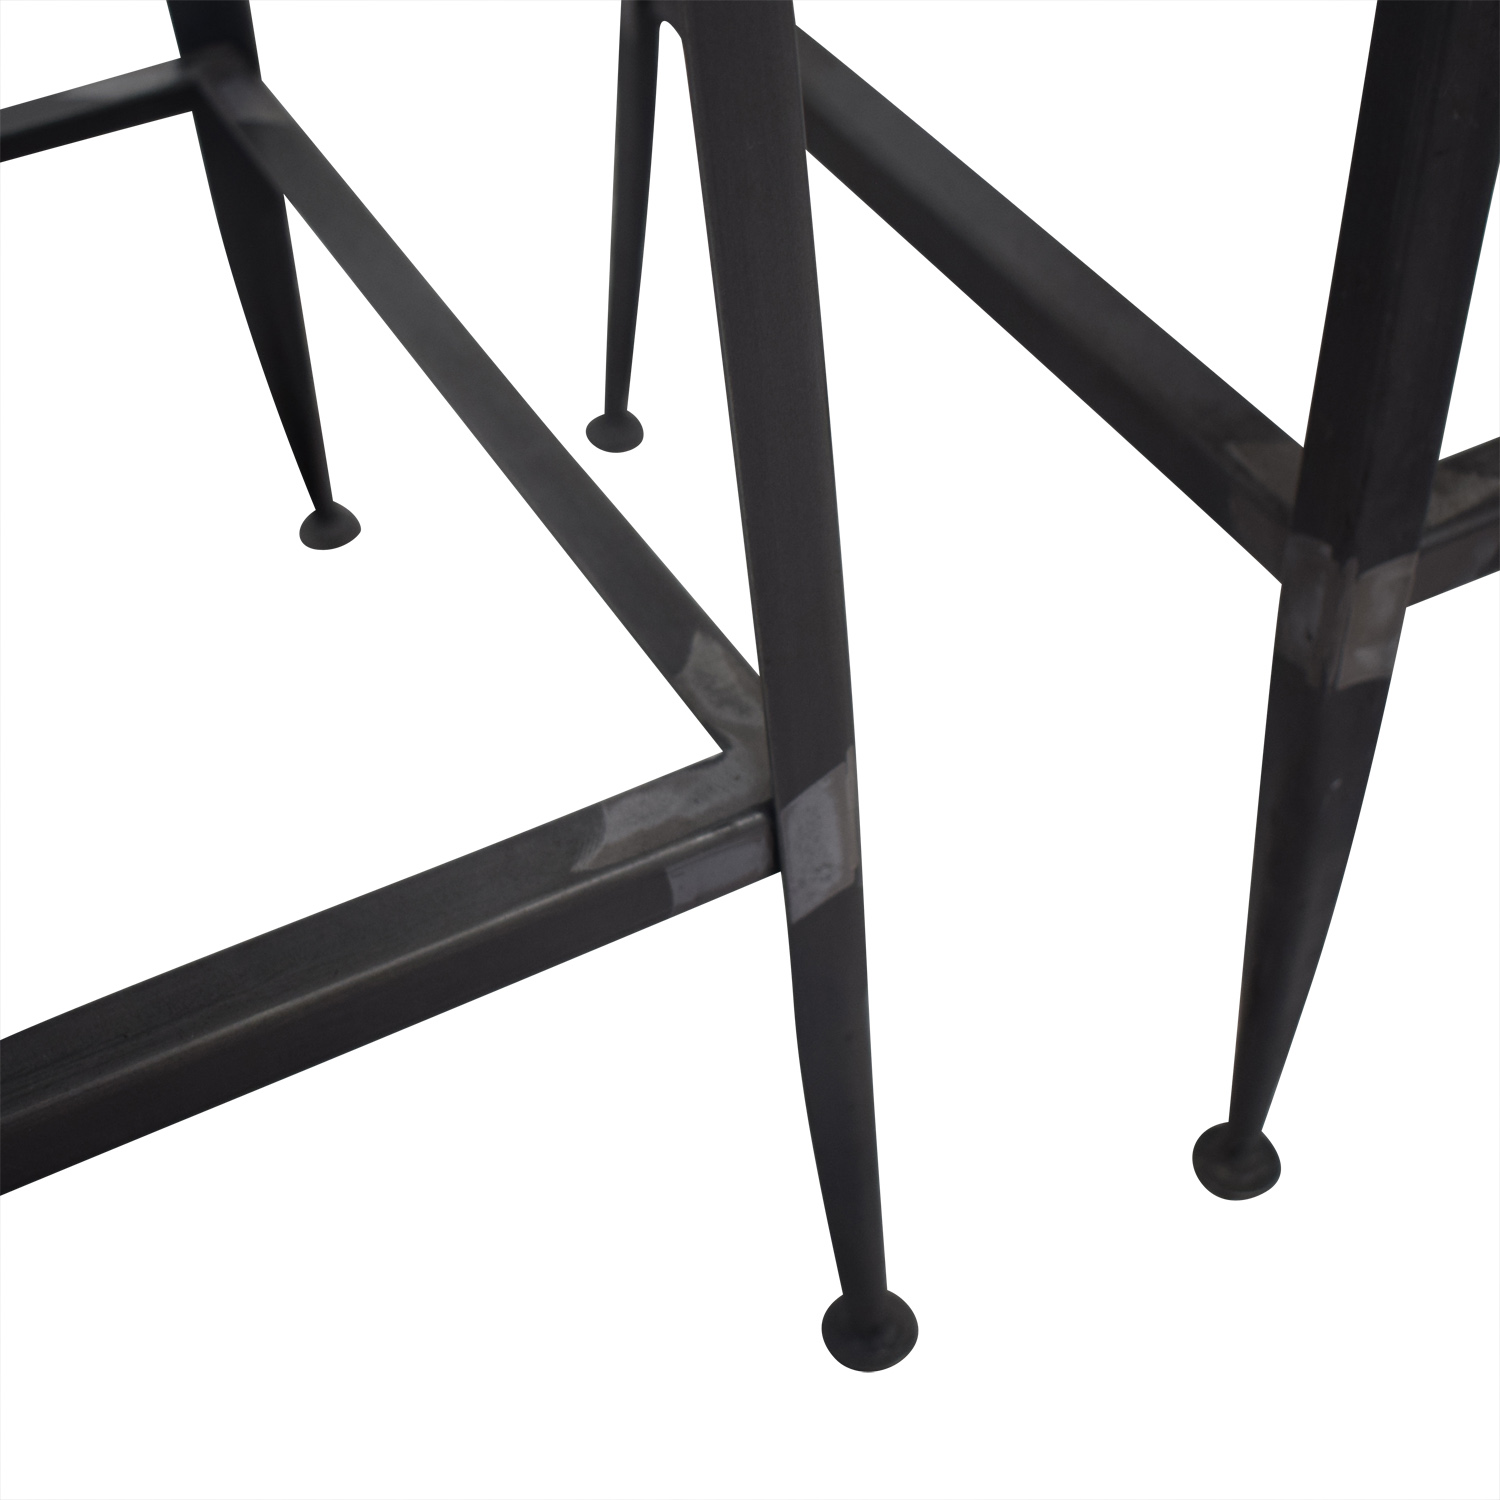 CB2 CB2 Flint Steel Counter Stools Stools